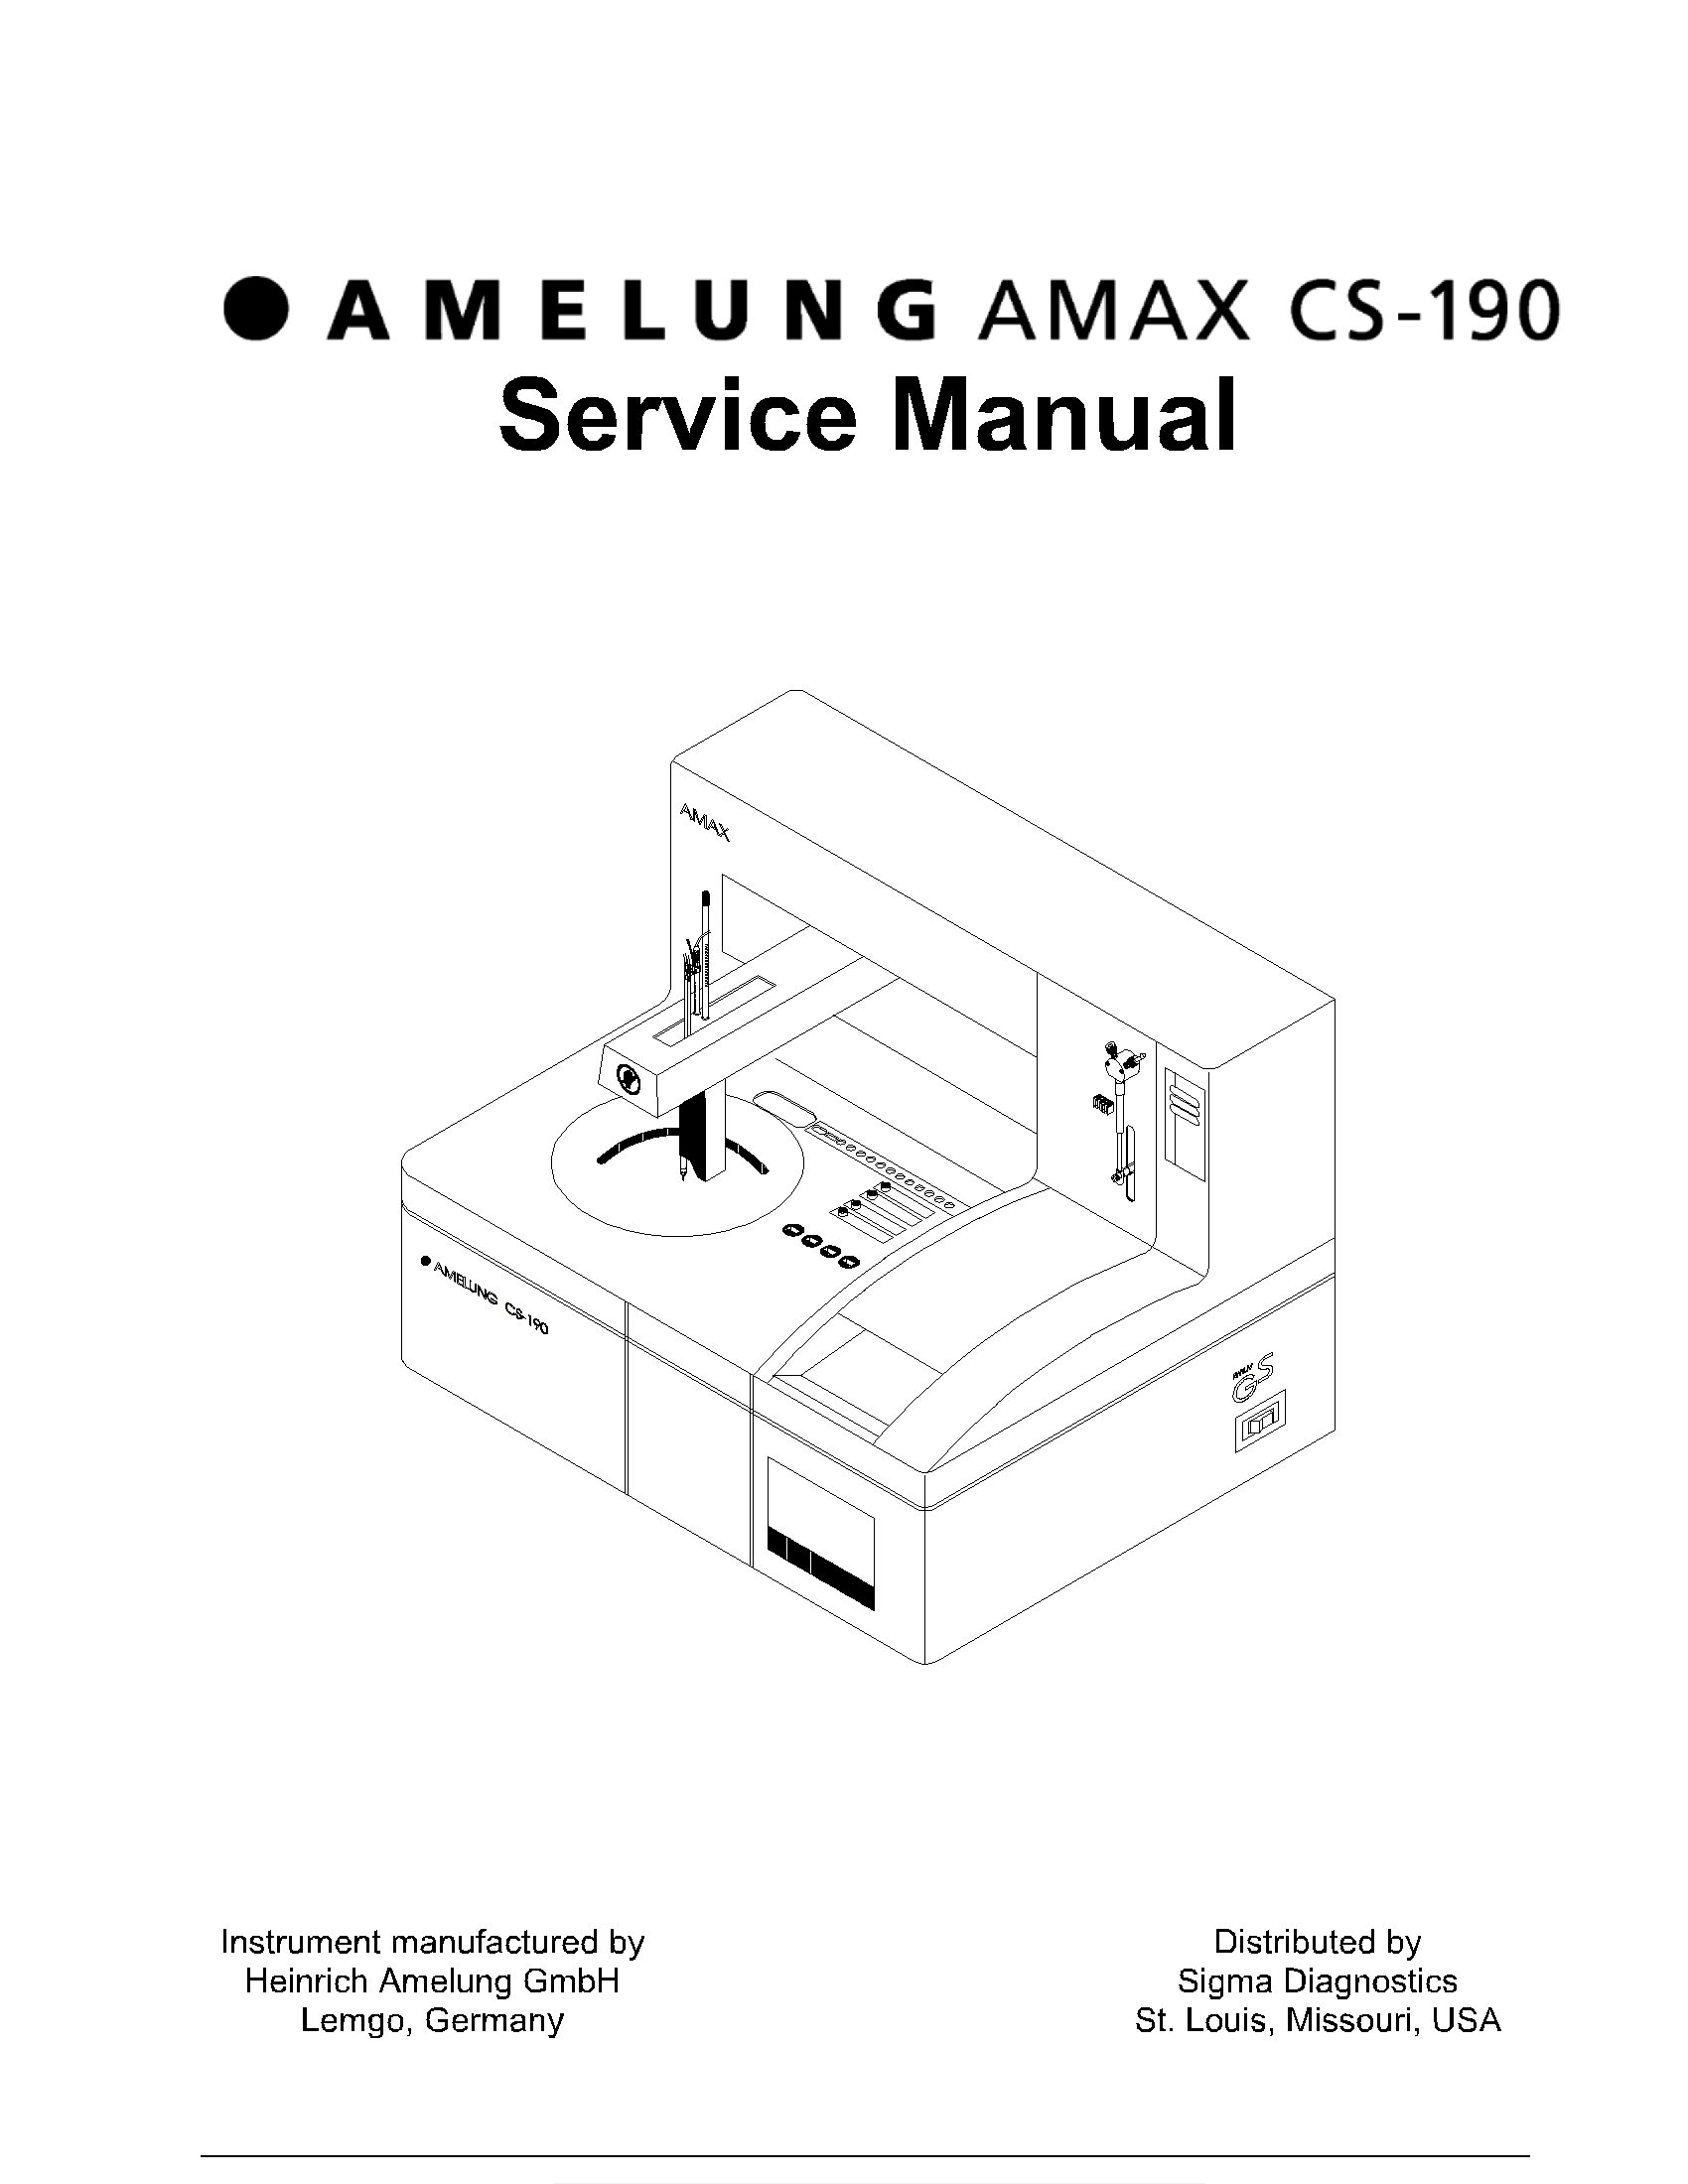 Sigma-Amelung Amax CS-190 Analyzer Service Manual